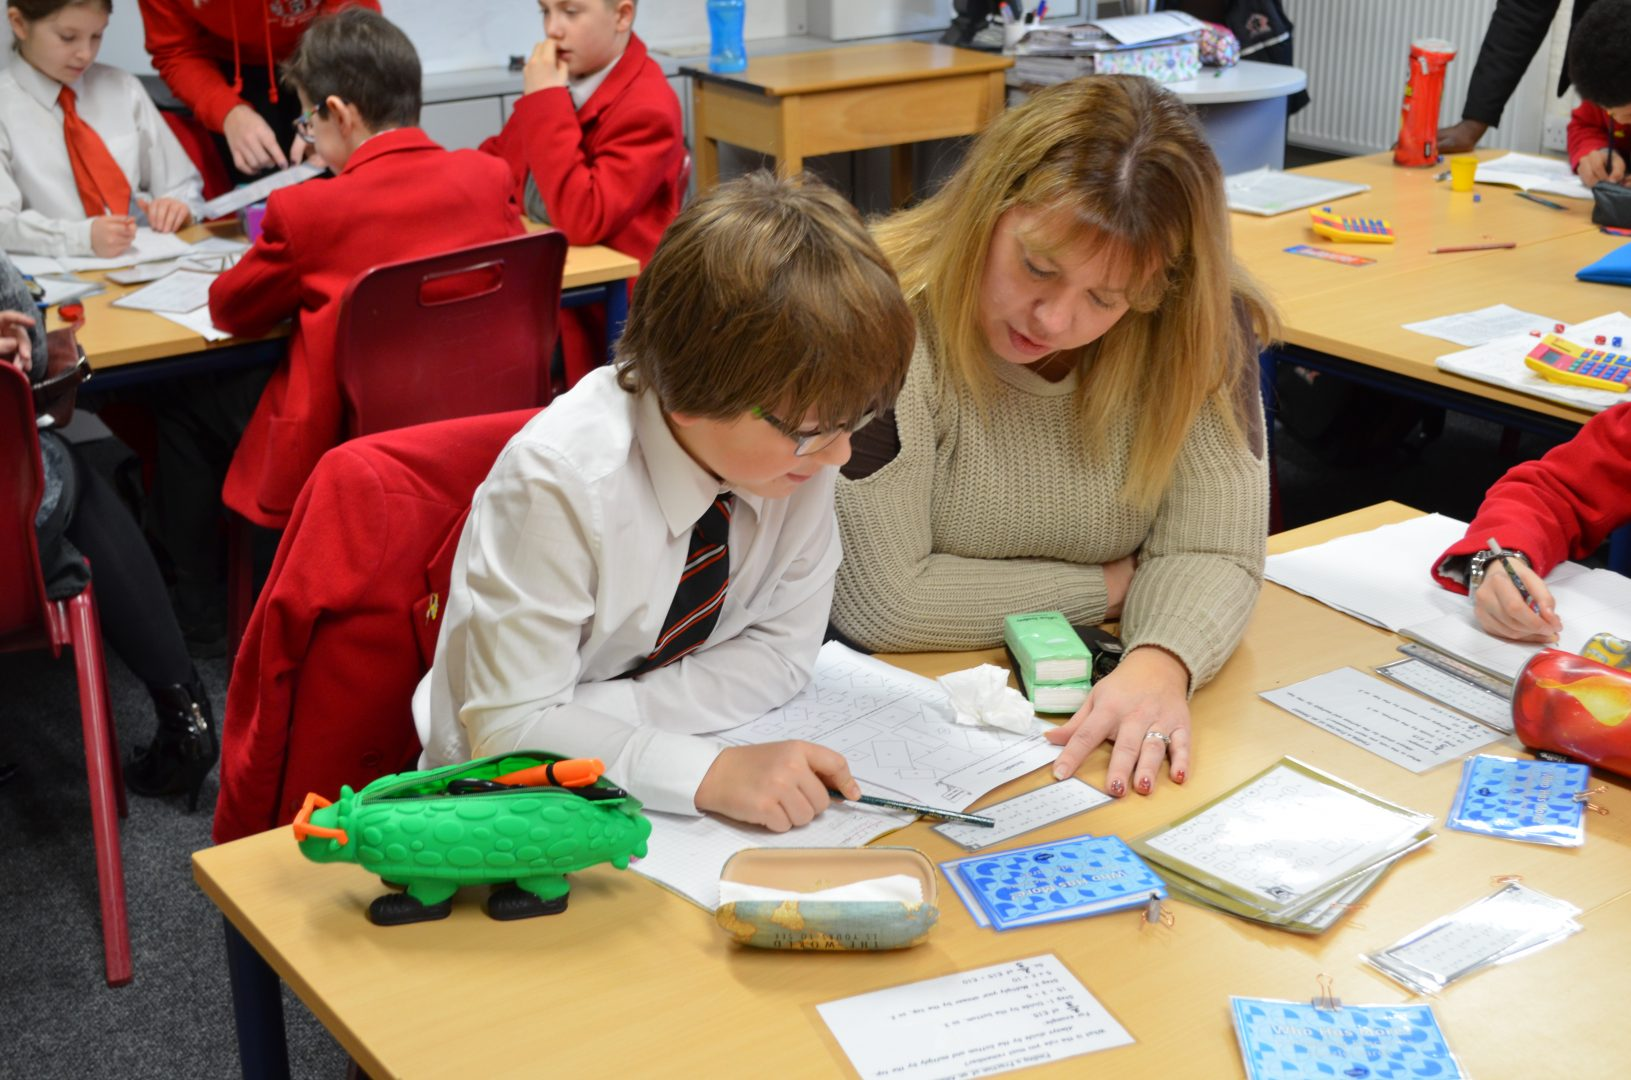 Quinton pupil interacting with teacher in class session